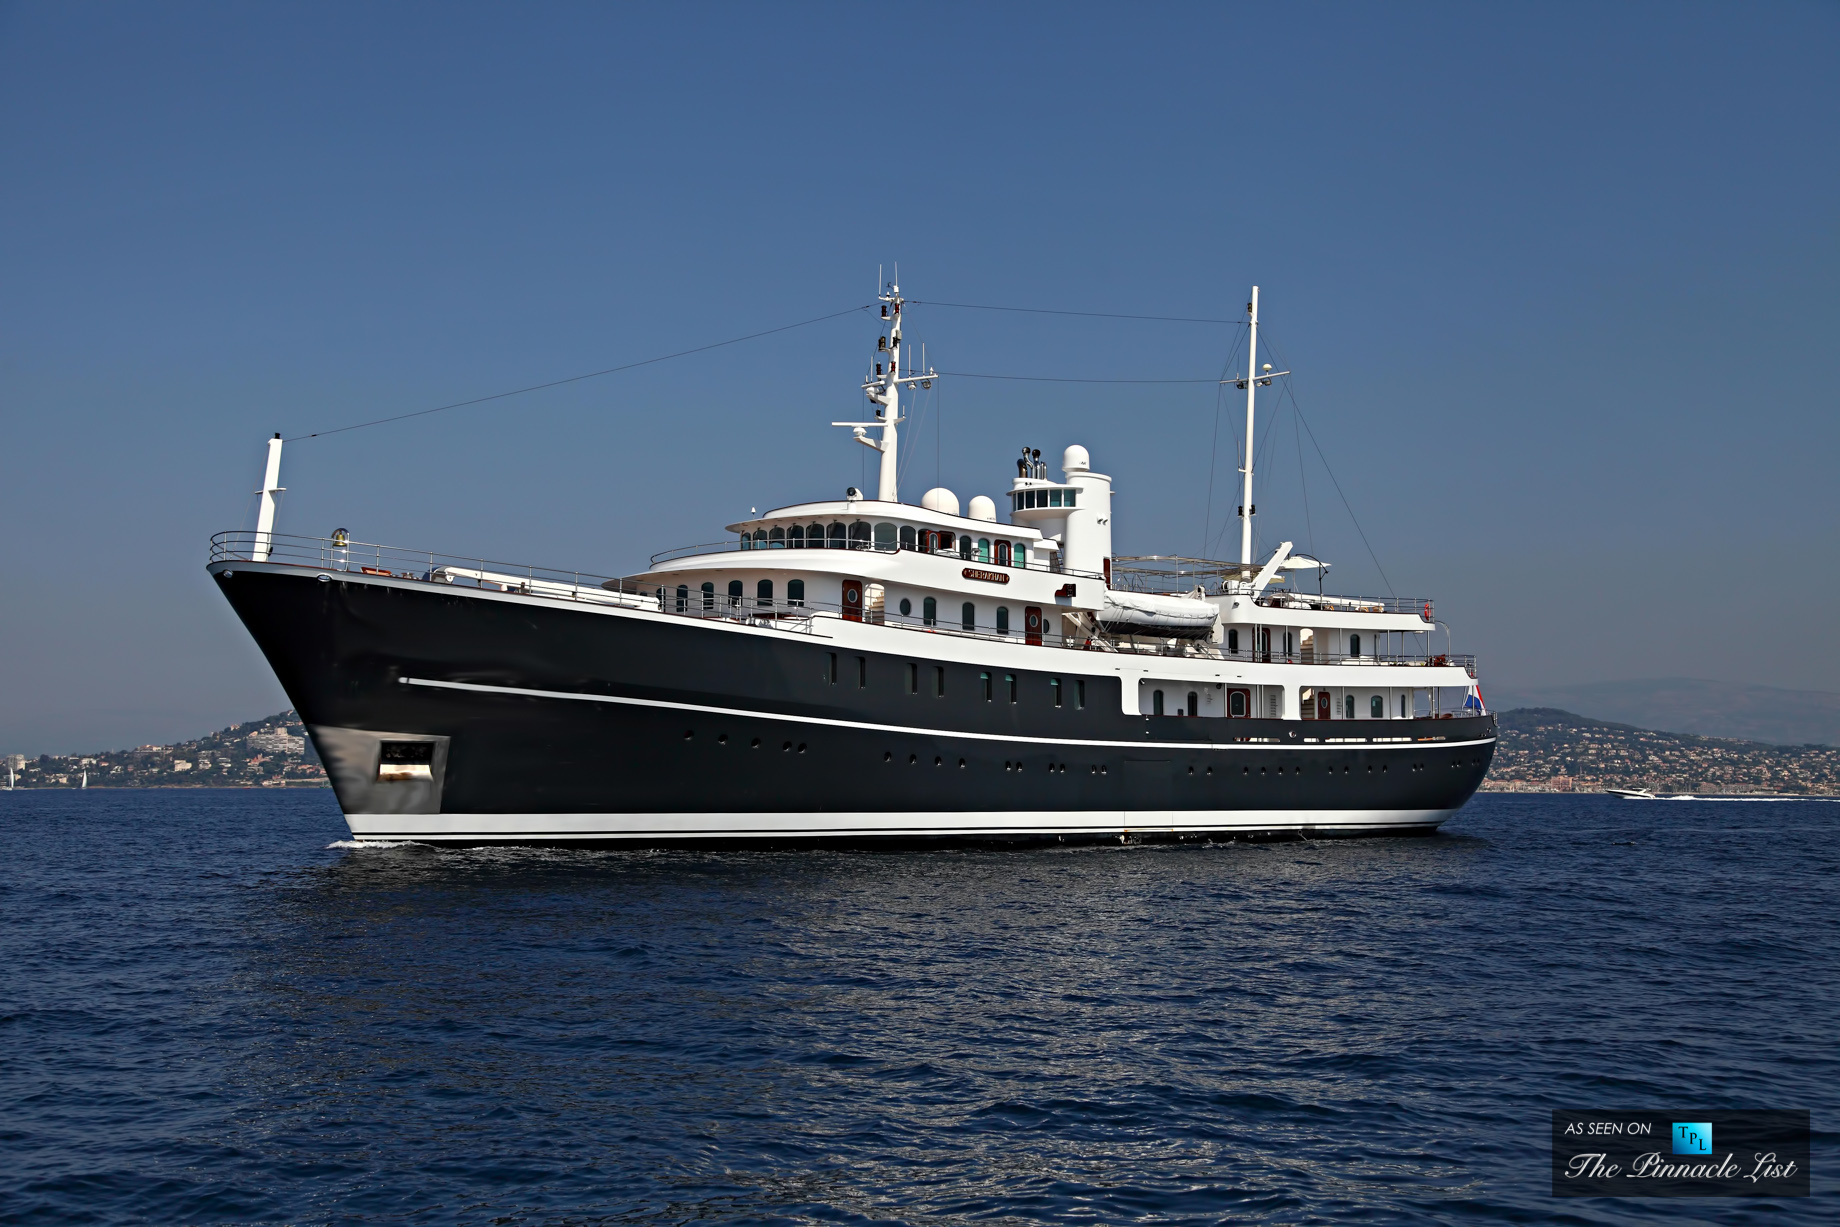 Sherakhan - Four Classic Superyachts Offering Timeless Elegance and Modern Comfort